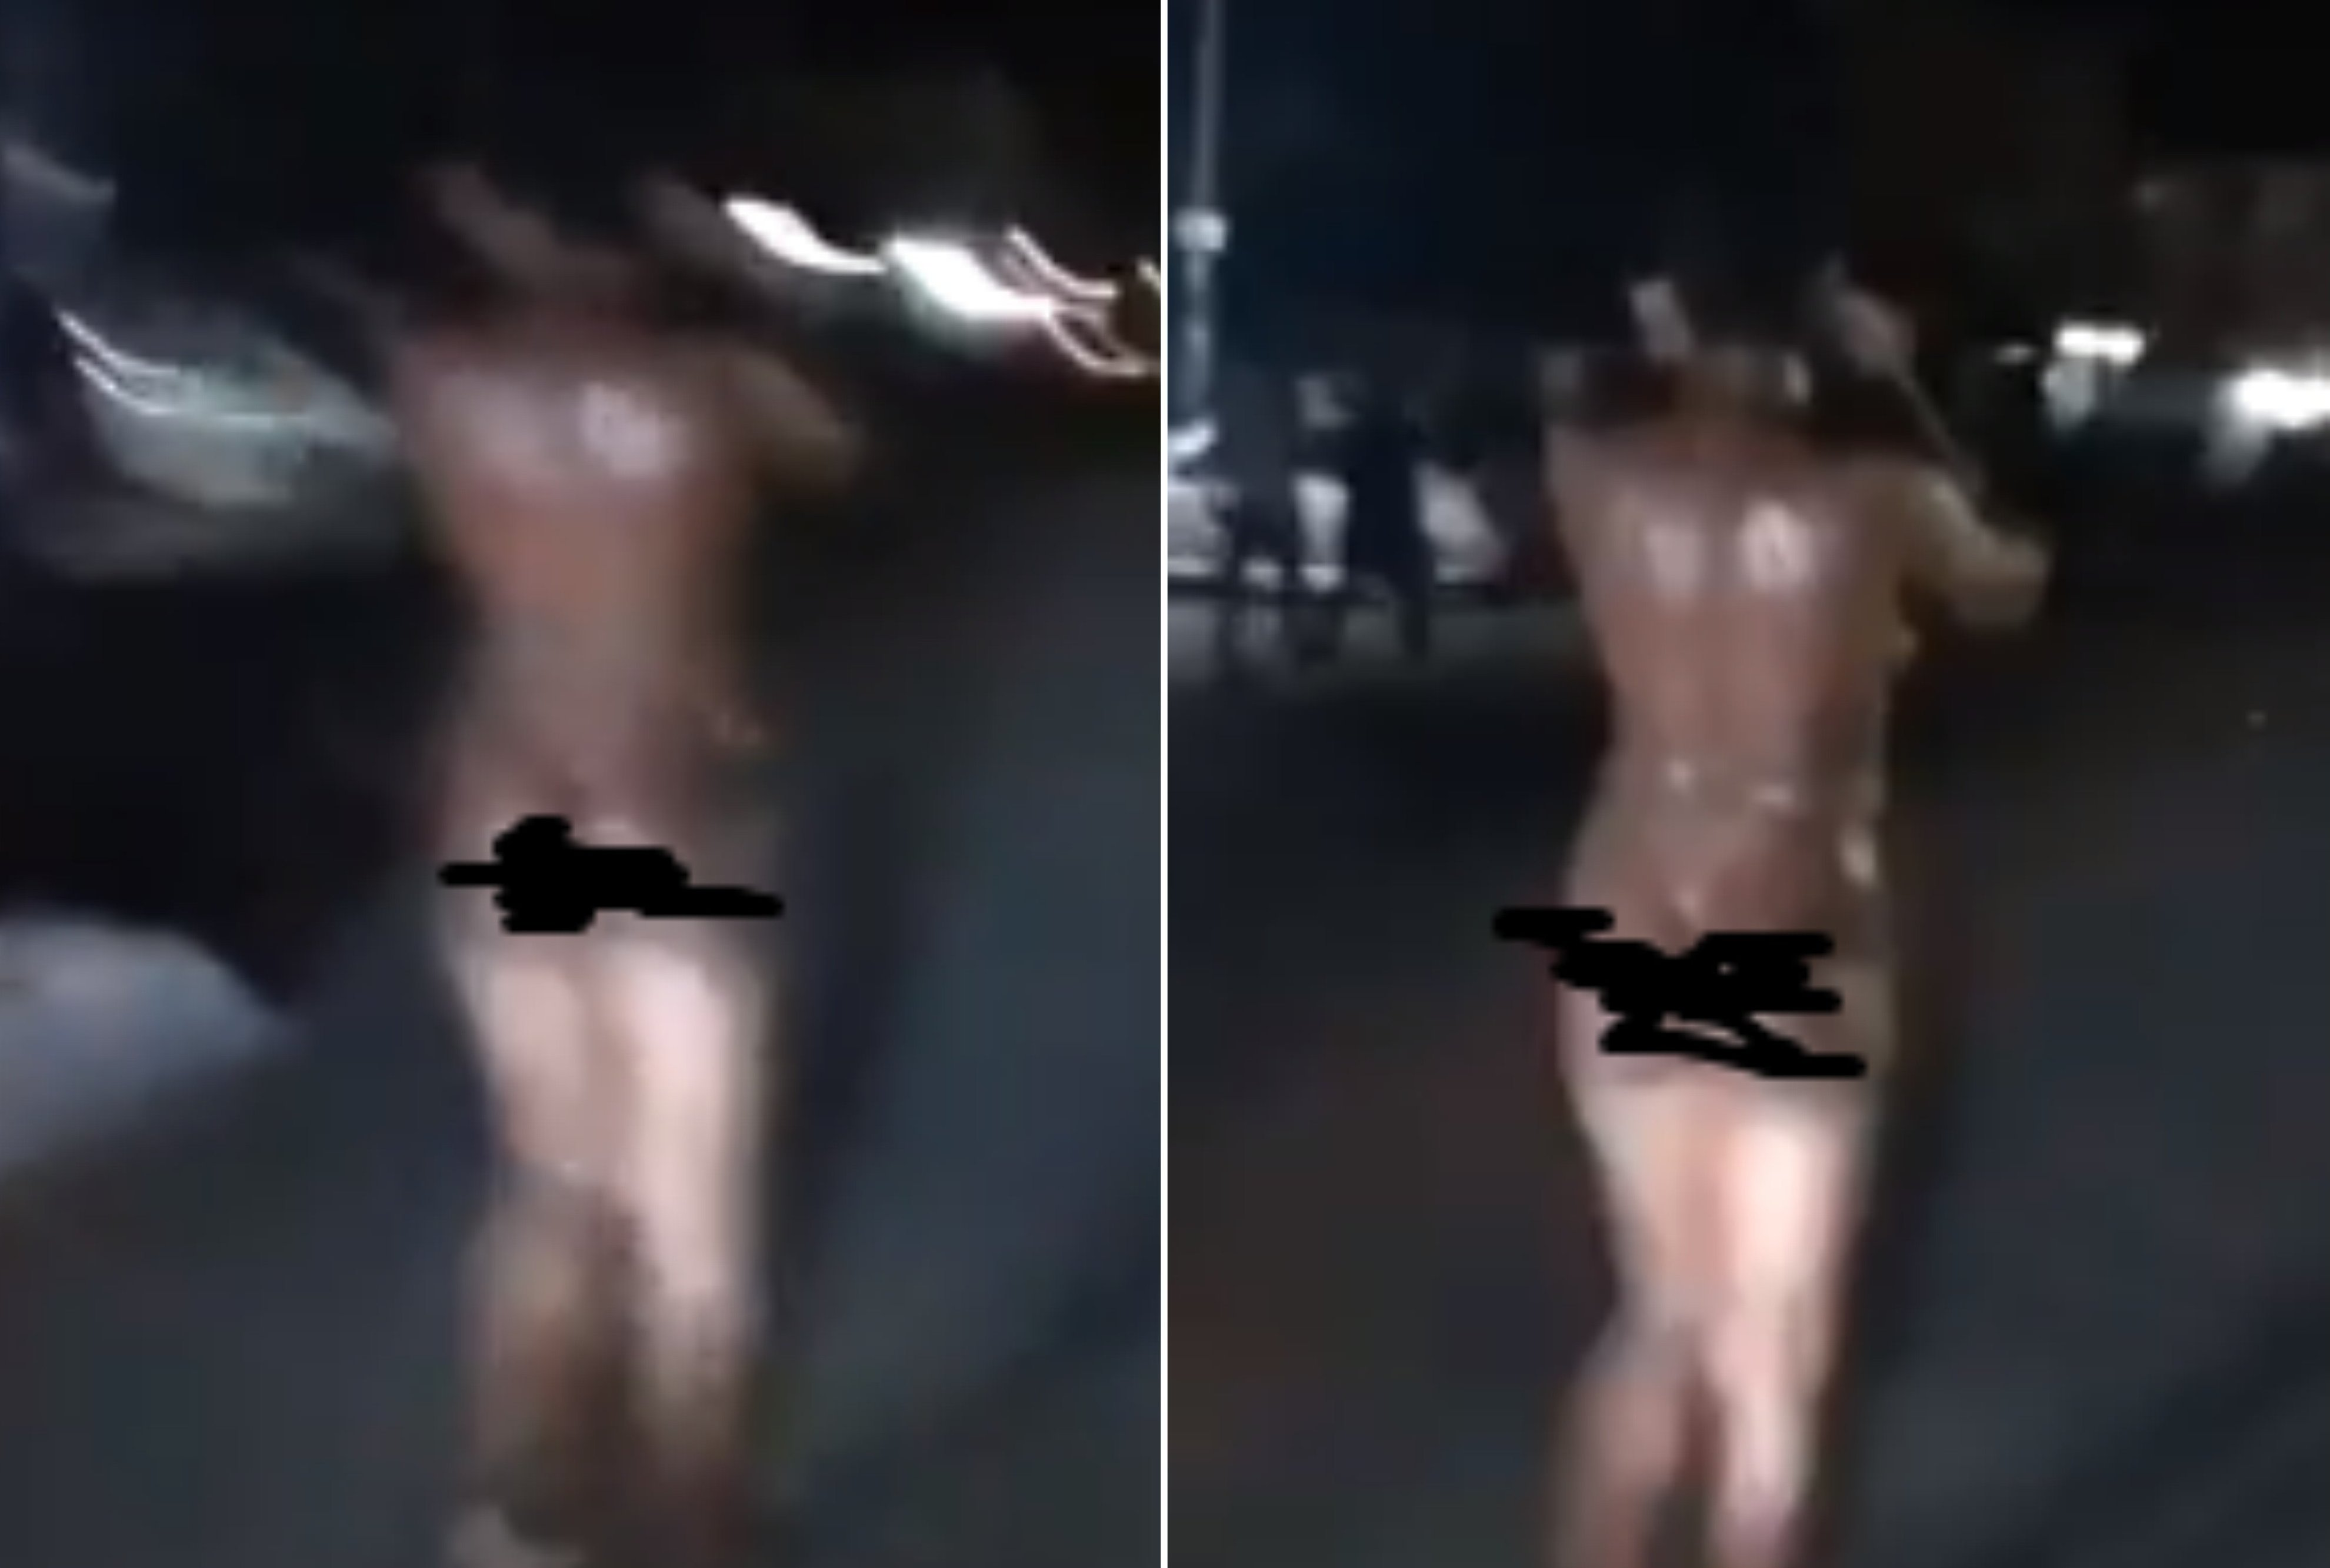 Lady goes mad and naked after she was dropped off by a man - Watch Video